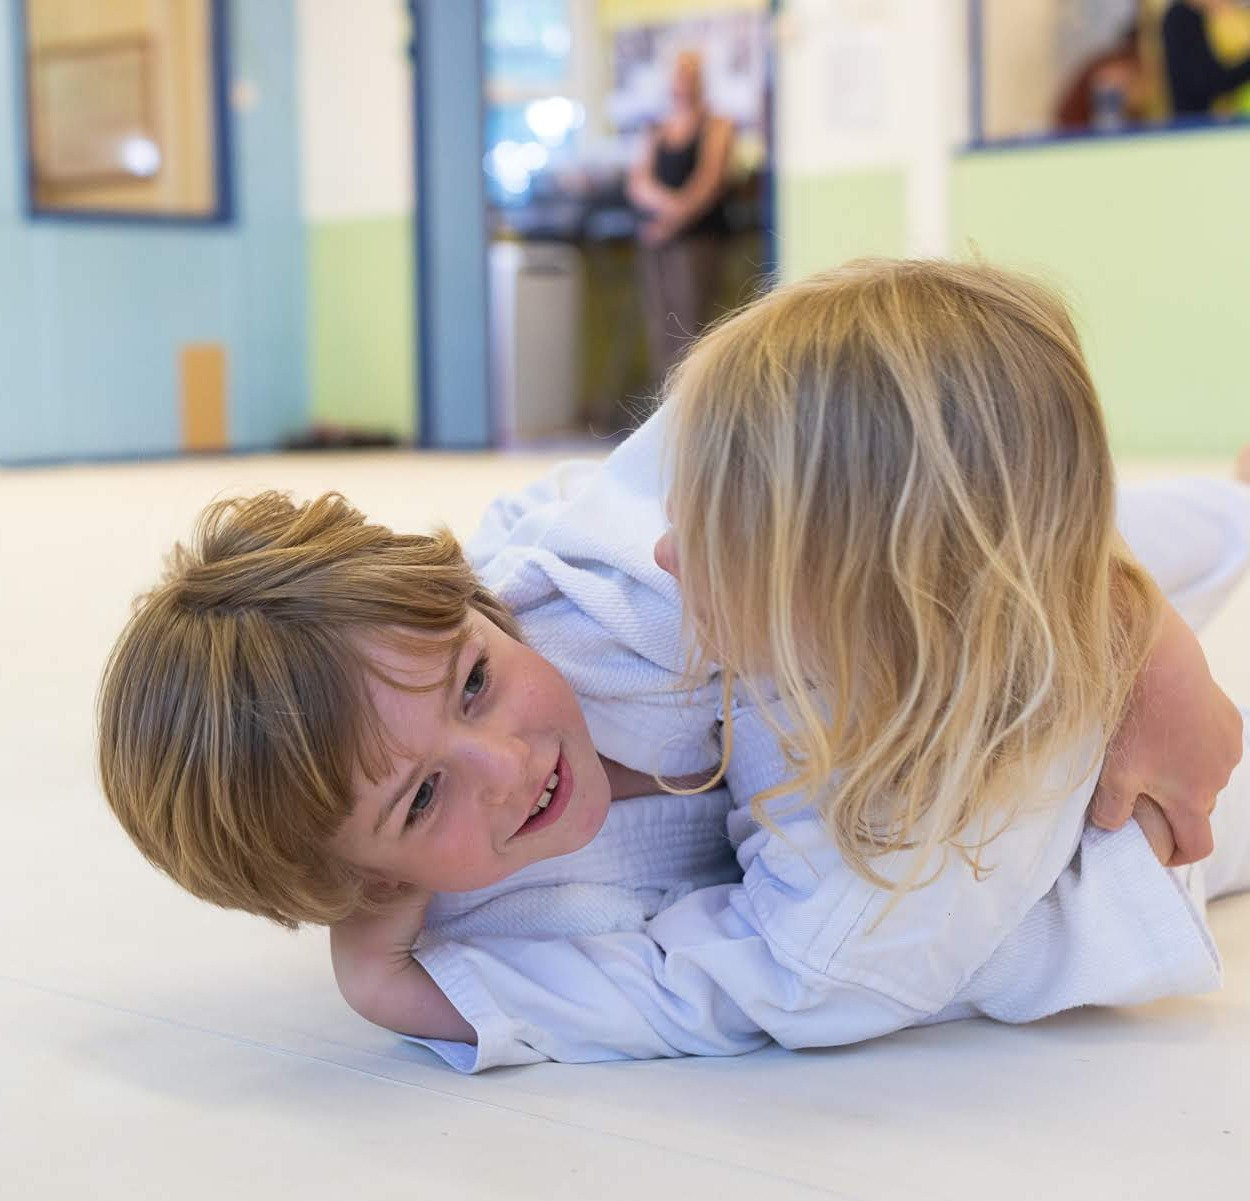 Tuesday Primary Class (ages 4-8)